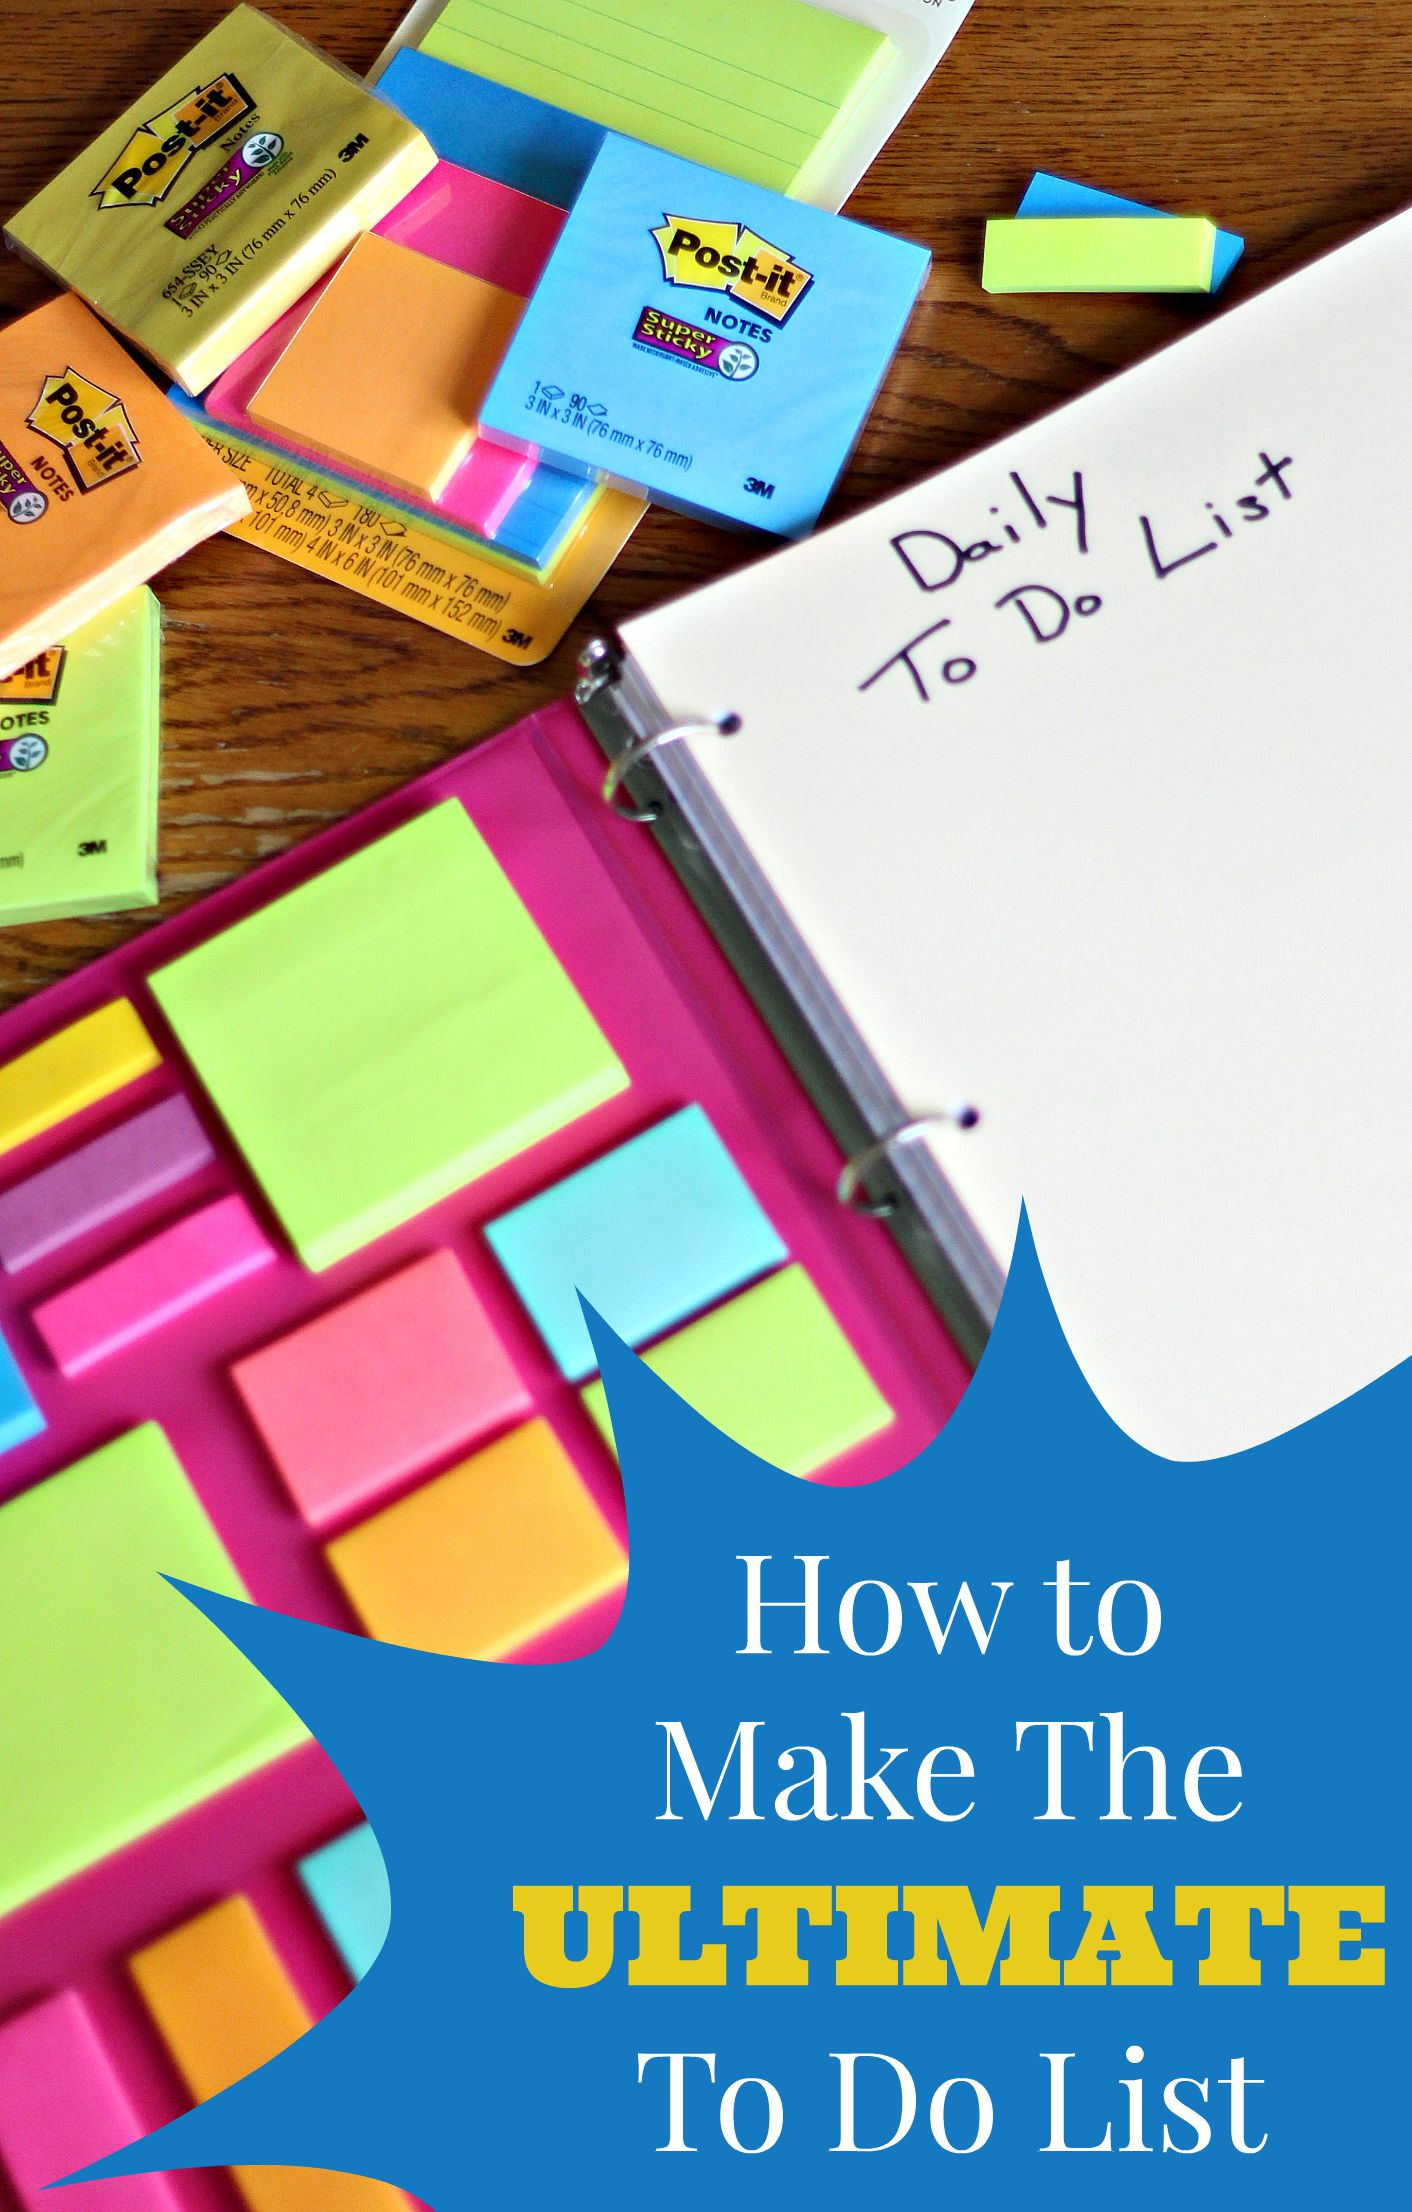 How to Make the Ultimate To Do List